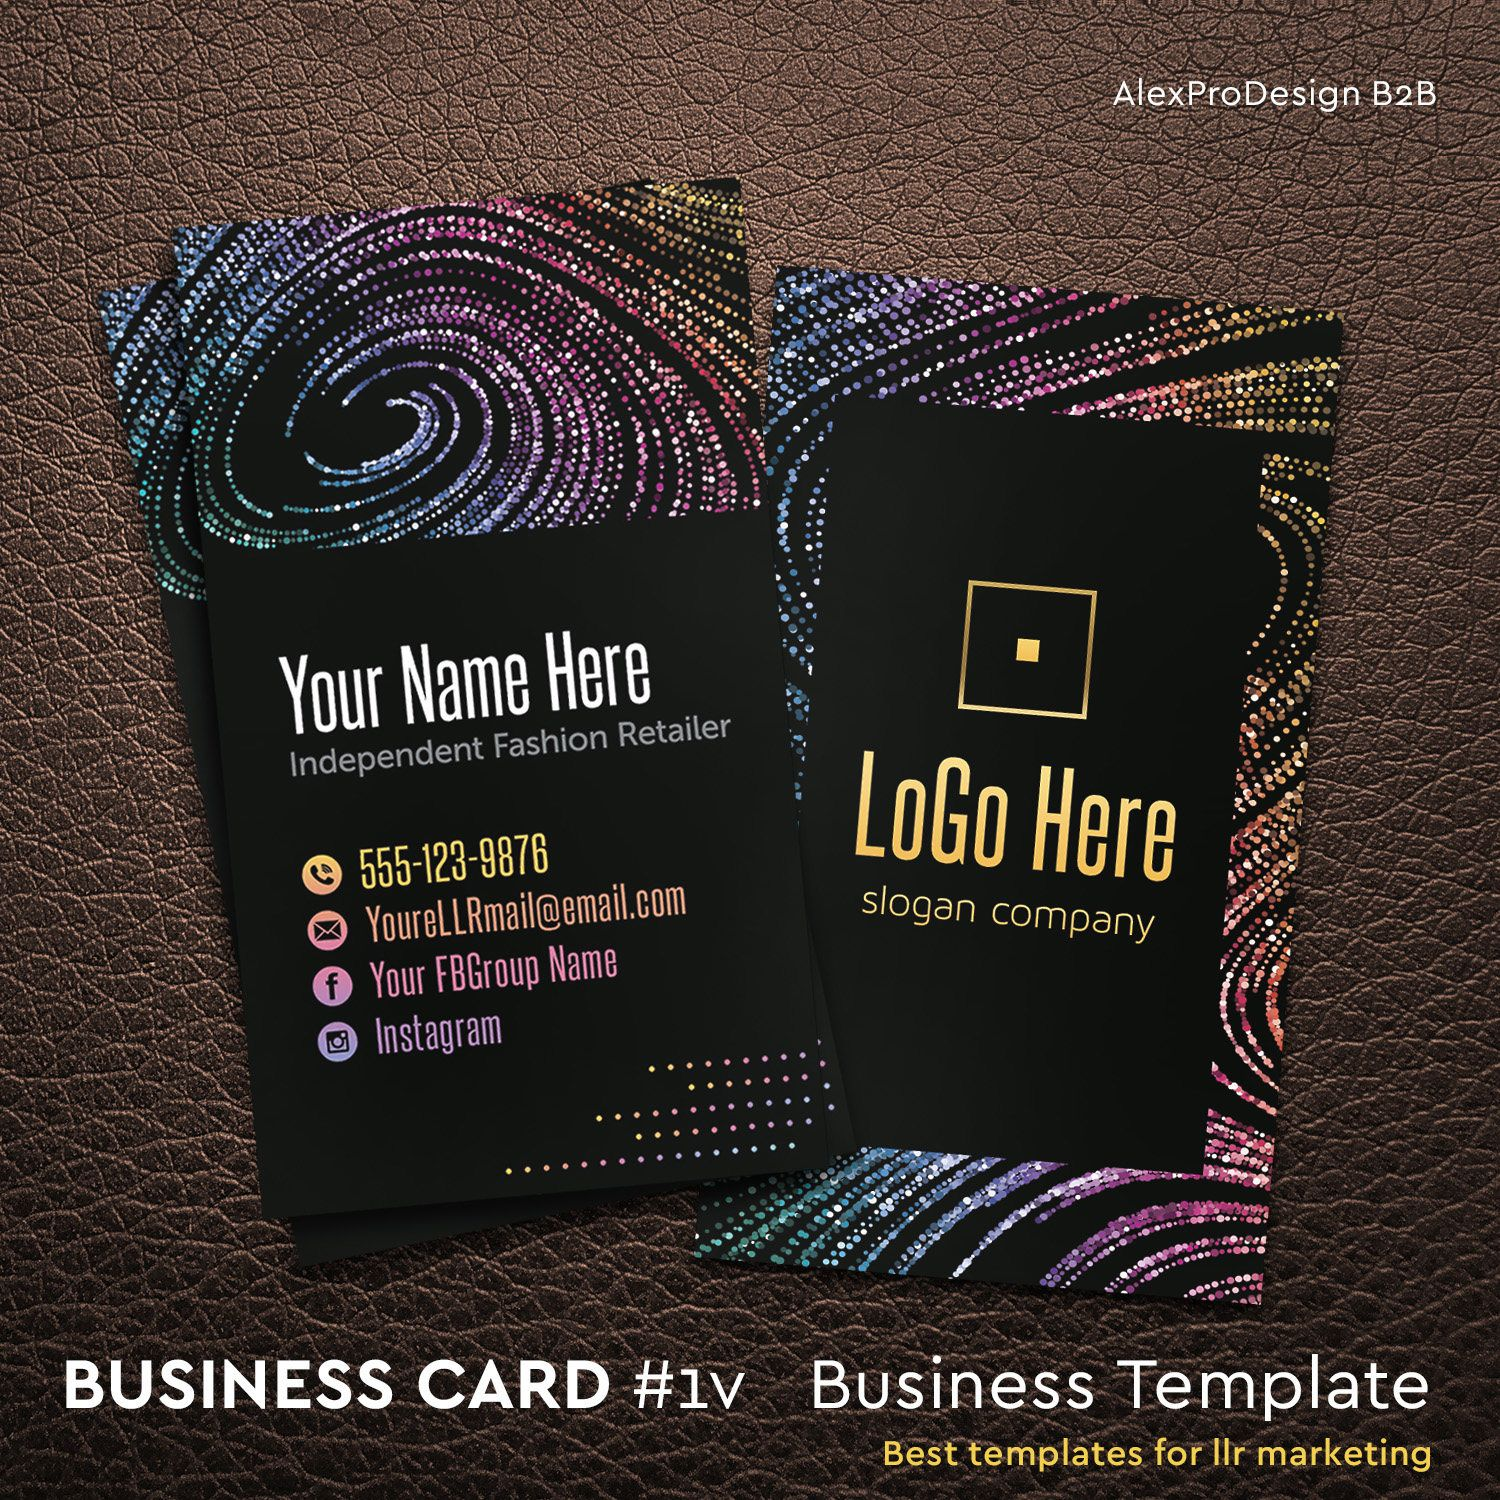 Business cards llr marketing personalize home office approved business cards llr marketing personalize home office approved fonts and color fashion consultant digital cards business card 1v2 reheart Gallery